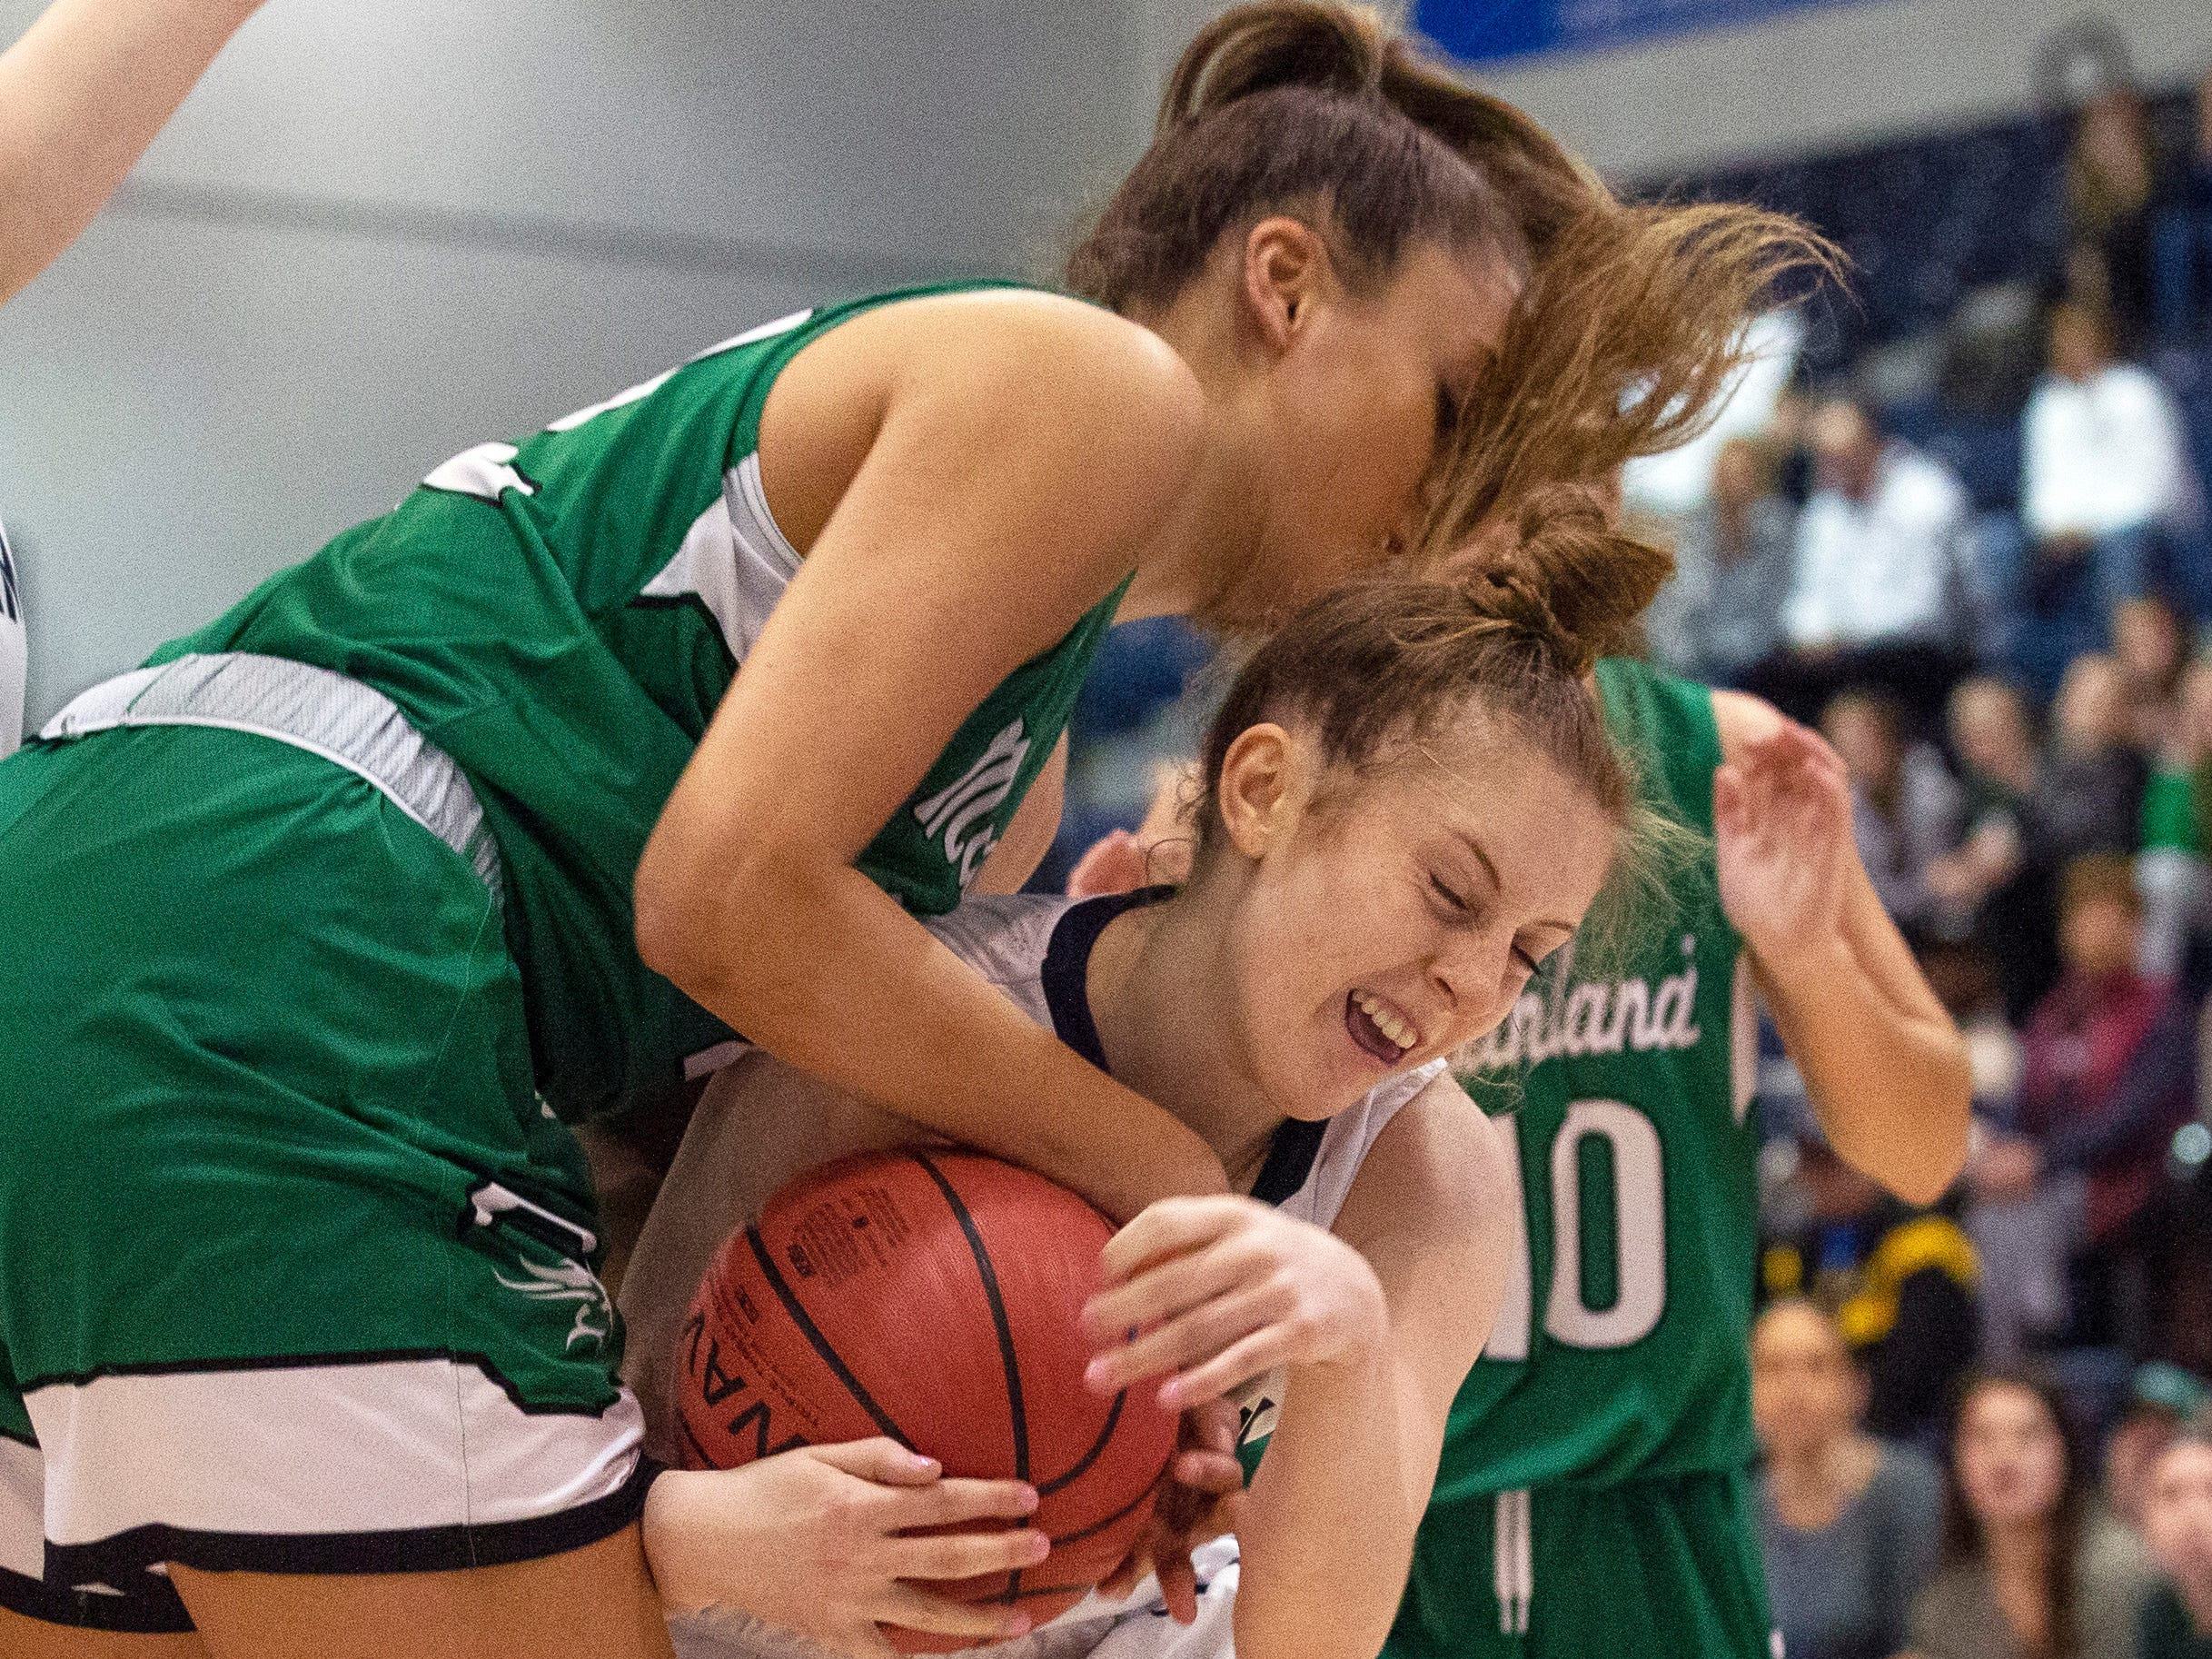 Michaela Ford, Chatham, battles with Kylee Watson, Mainland for a rebound during first half action. Chatham Girls Basketball vs Mainland in Girls Group III Final in Toms River on March 10, 2019.